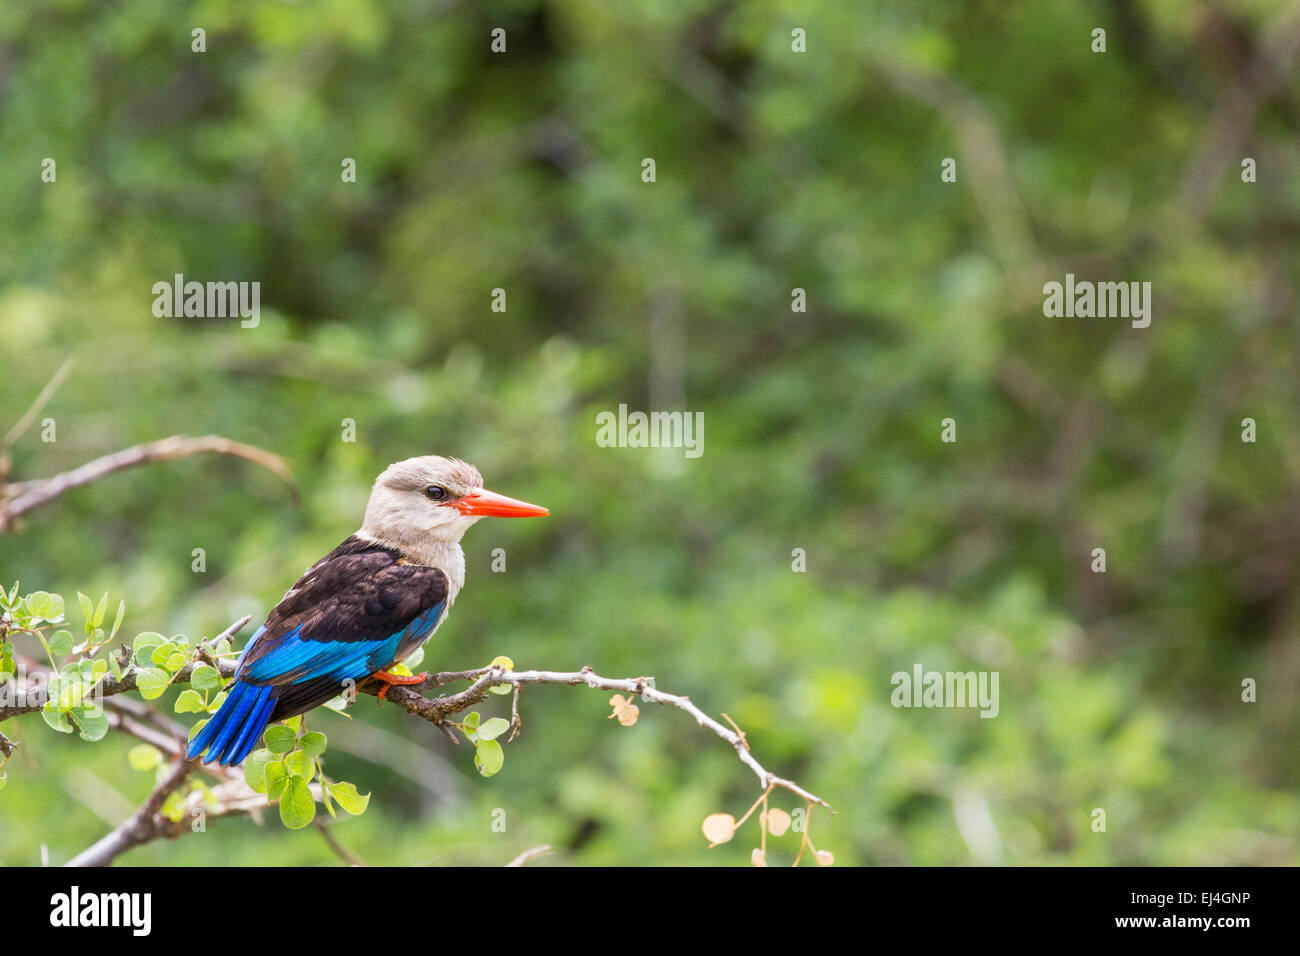 Woodland kingfisher in Lake Manyara national park, Tanzania - Stock Image